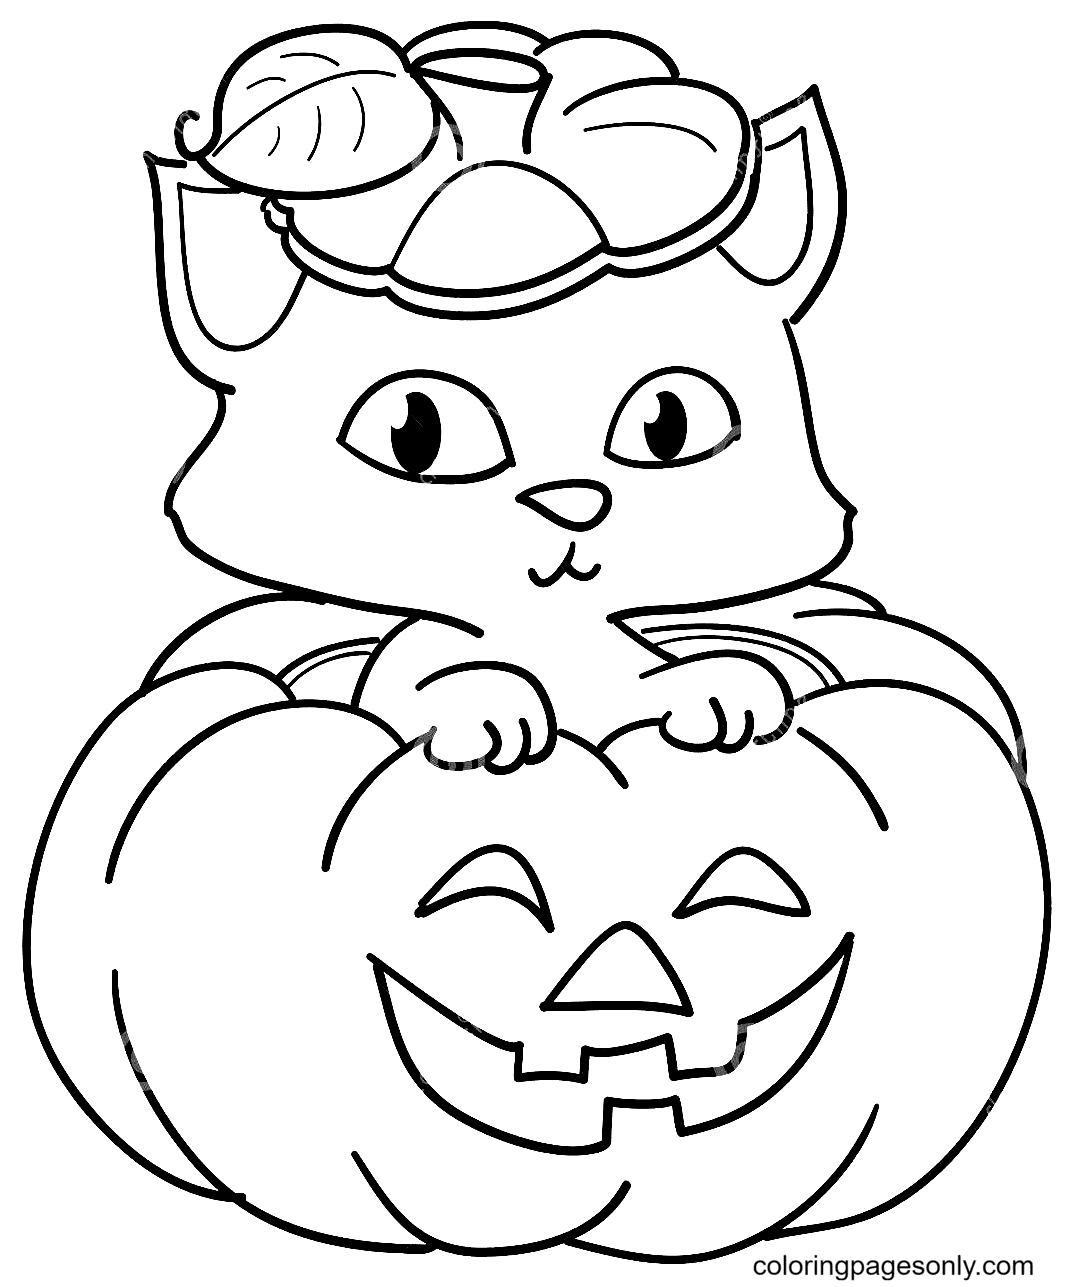 Cute Cat and Pumpkin Coloring Page